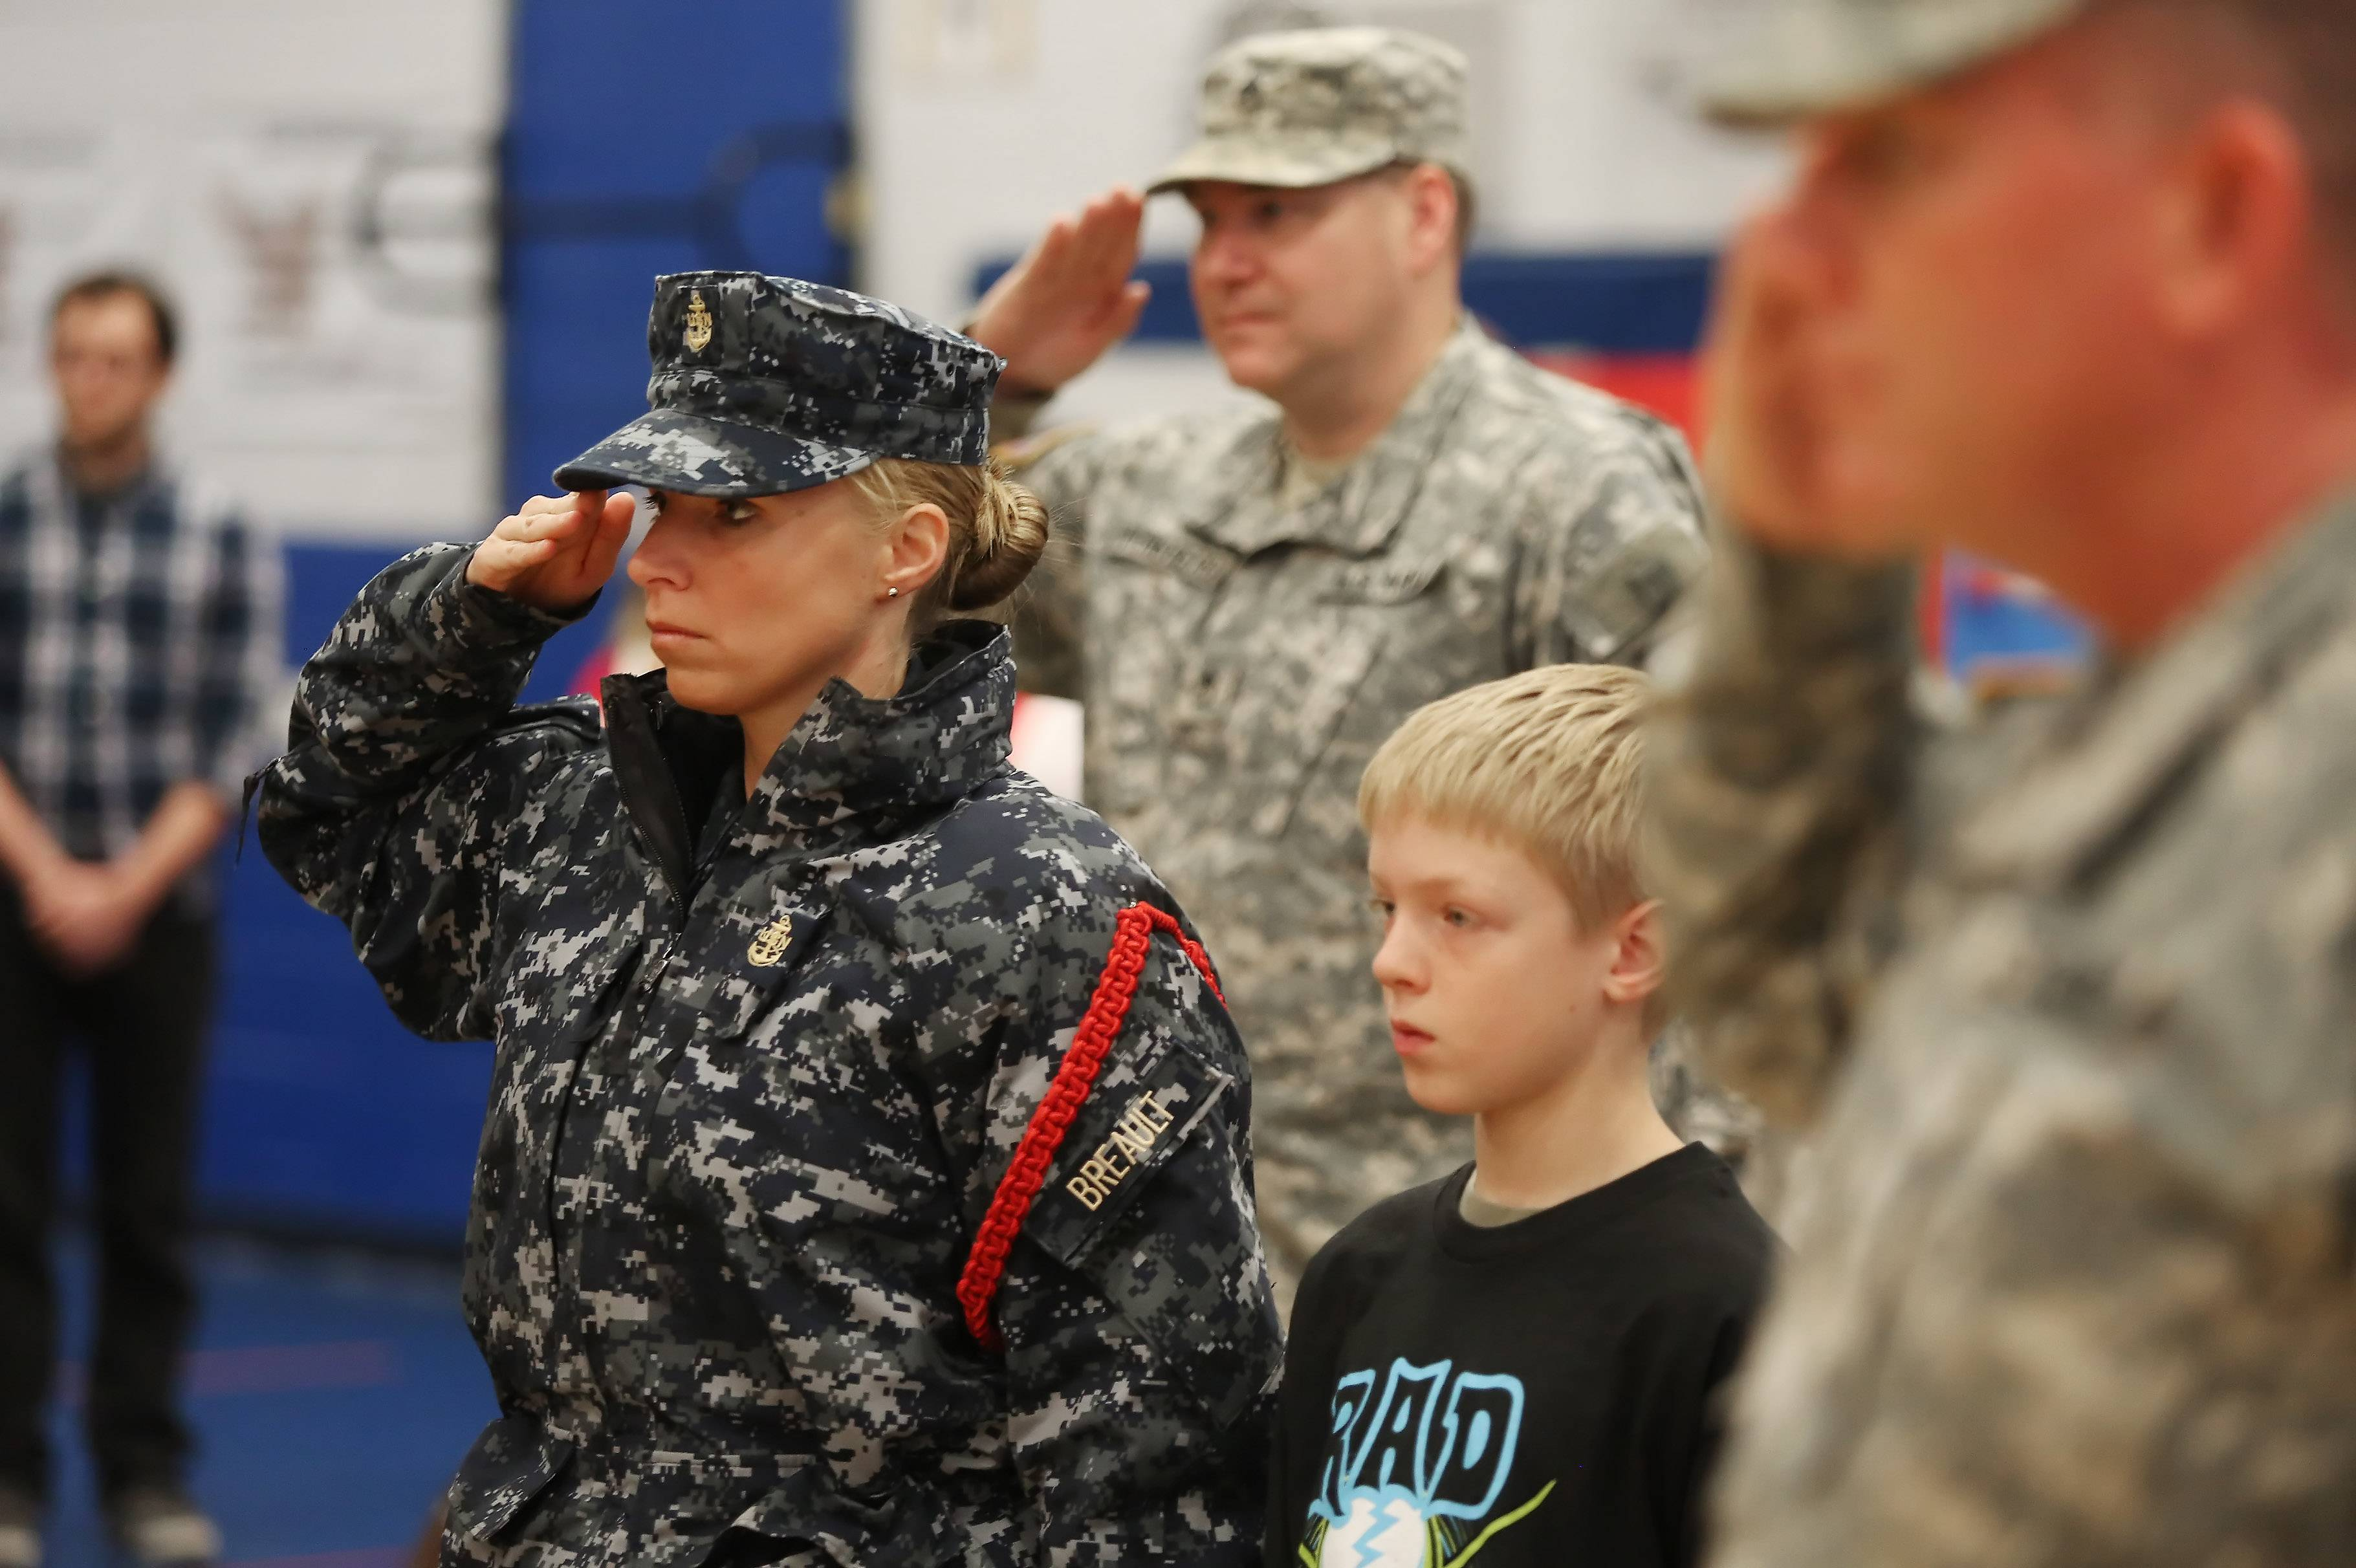 Navy Chief Kristine Breault, left, with her fifth grade son, Jaeger, salute as the flag passes during the Veterans Day assembly Tuesday at Frederick School in Grayslake. The event also featured the Drill Team and Color Guard from Great Lakes Naval Station.